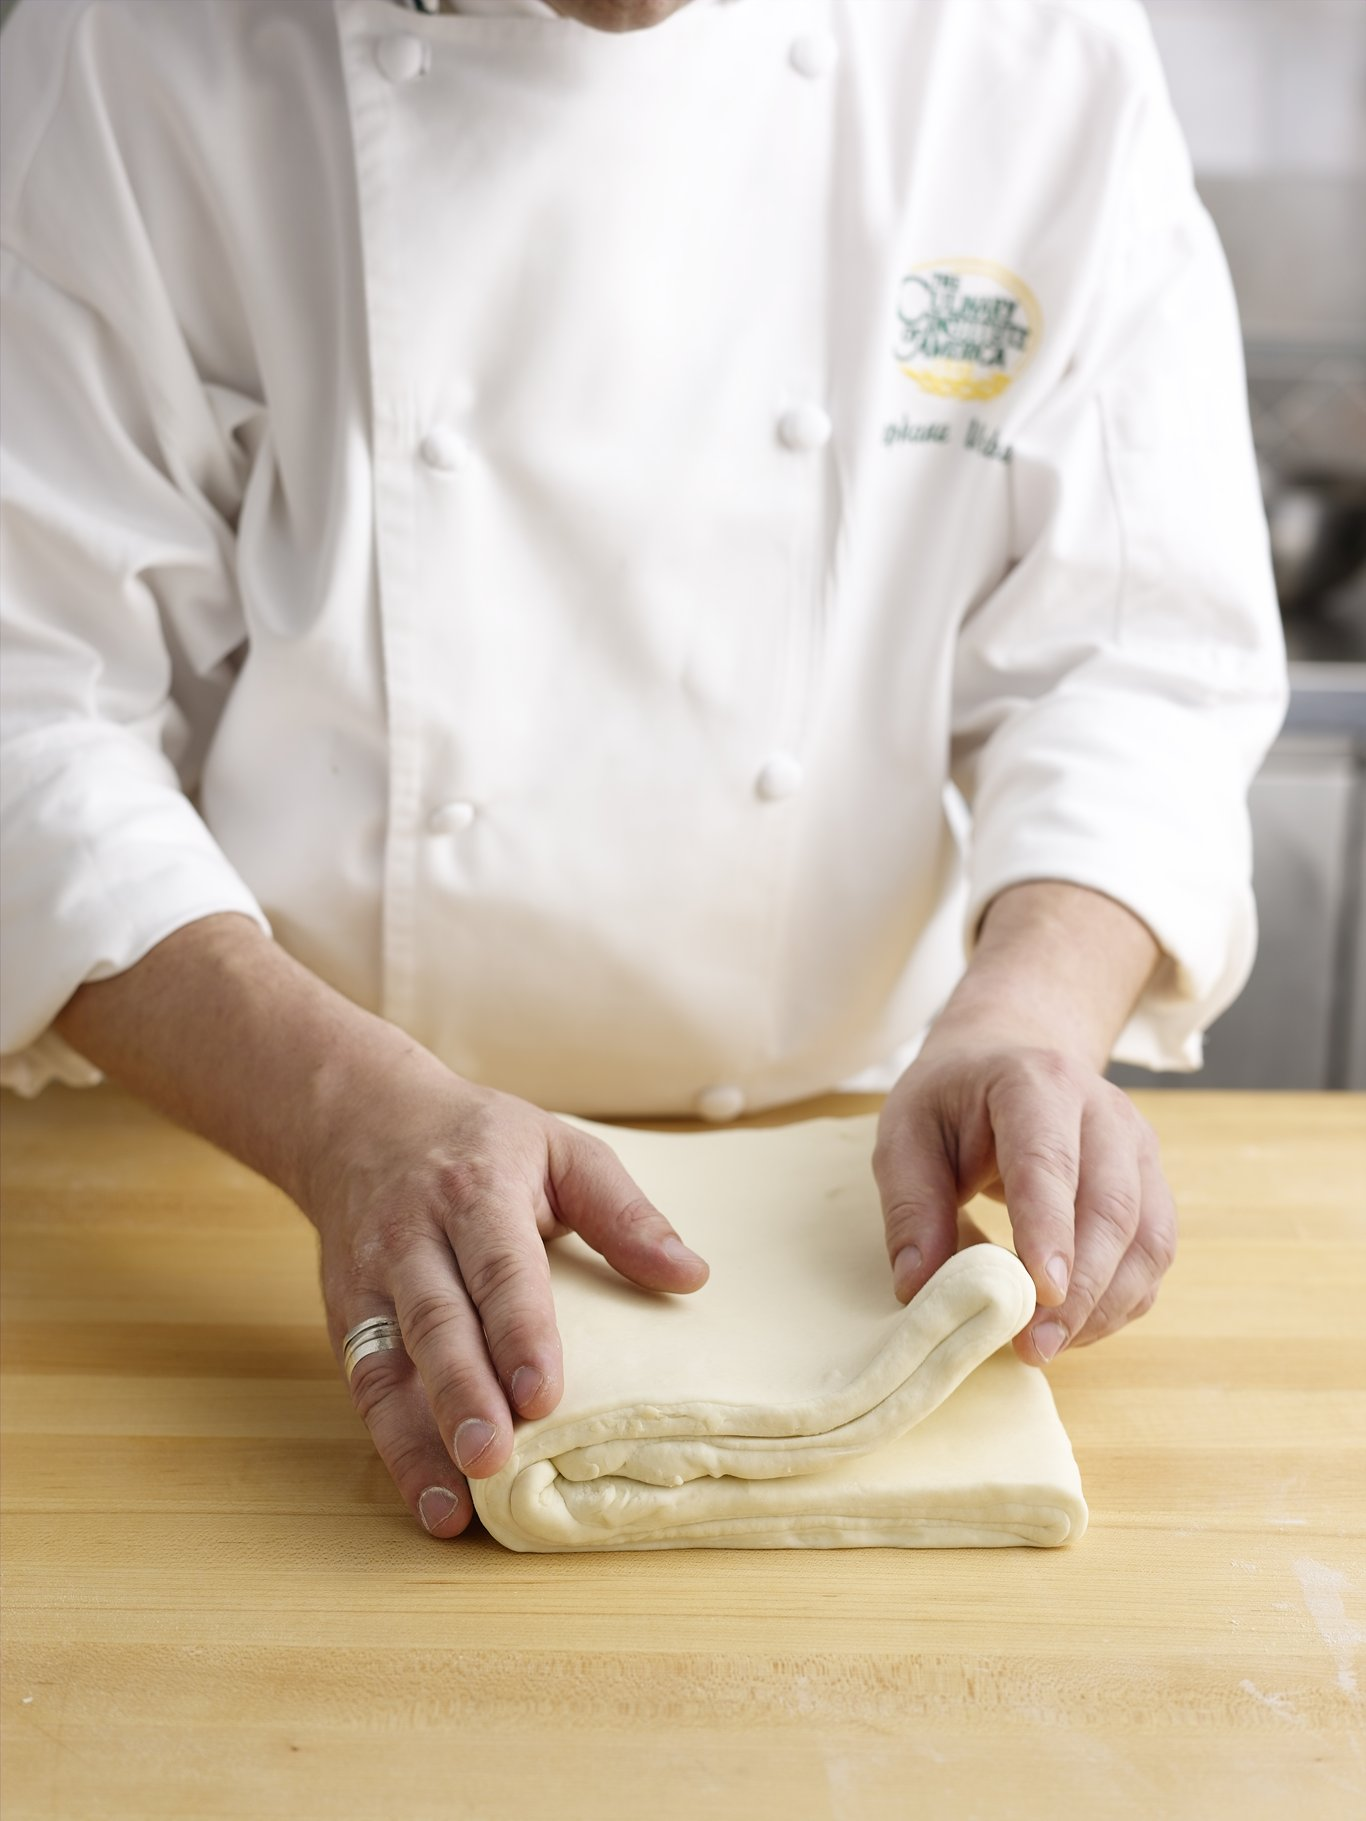 Folding the pastry dough using the four-fold, or book-fold method.